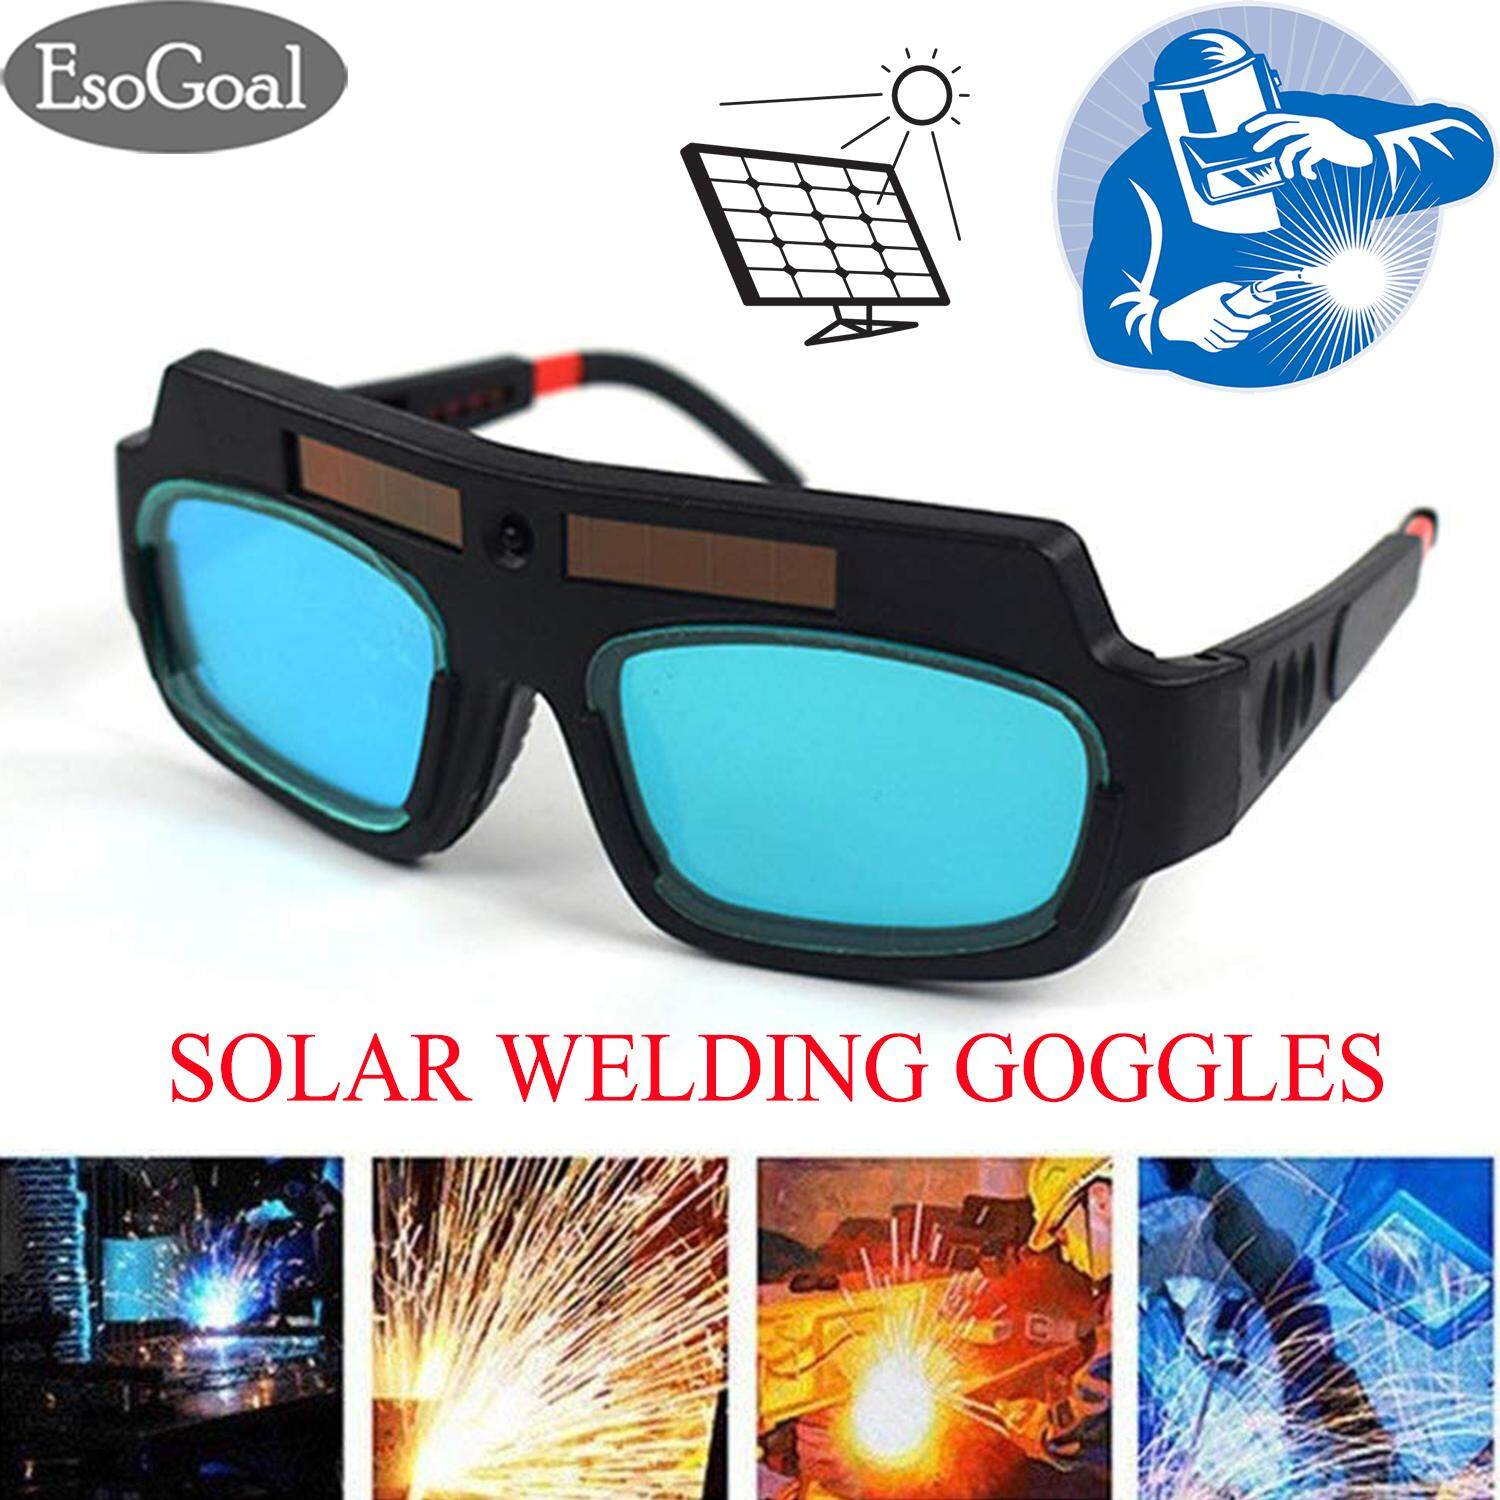 Esogoal Welding Tools Eyes Protection Welding Goggles Glasses Mask Solar Powered Auto Darkening Welding Eyewear Professional Welder Glasses Arc By Esogoal.